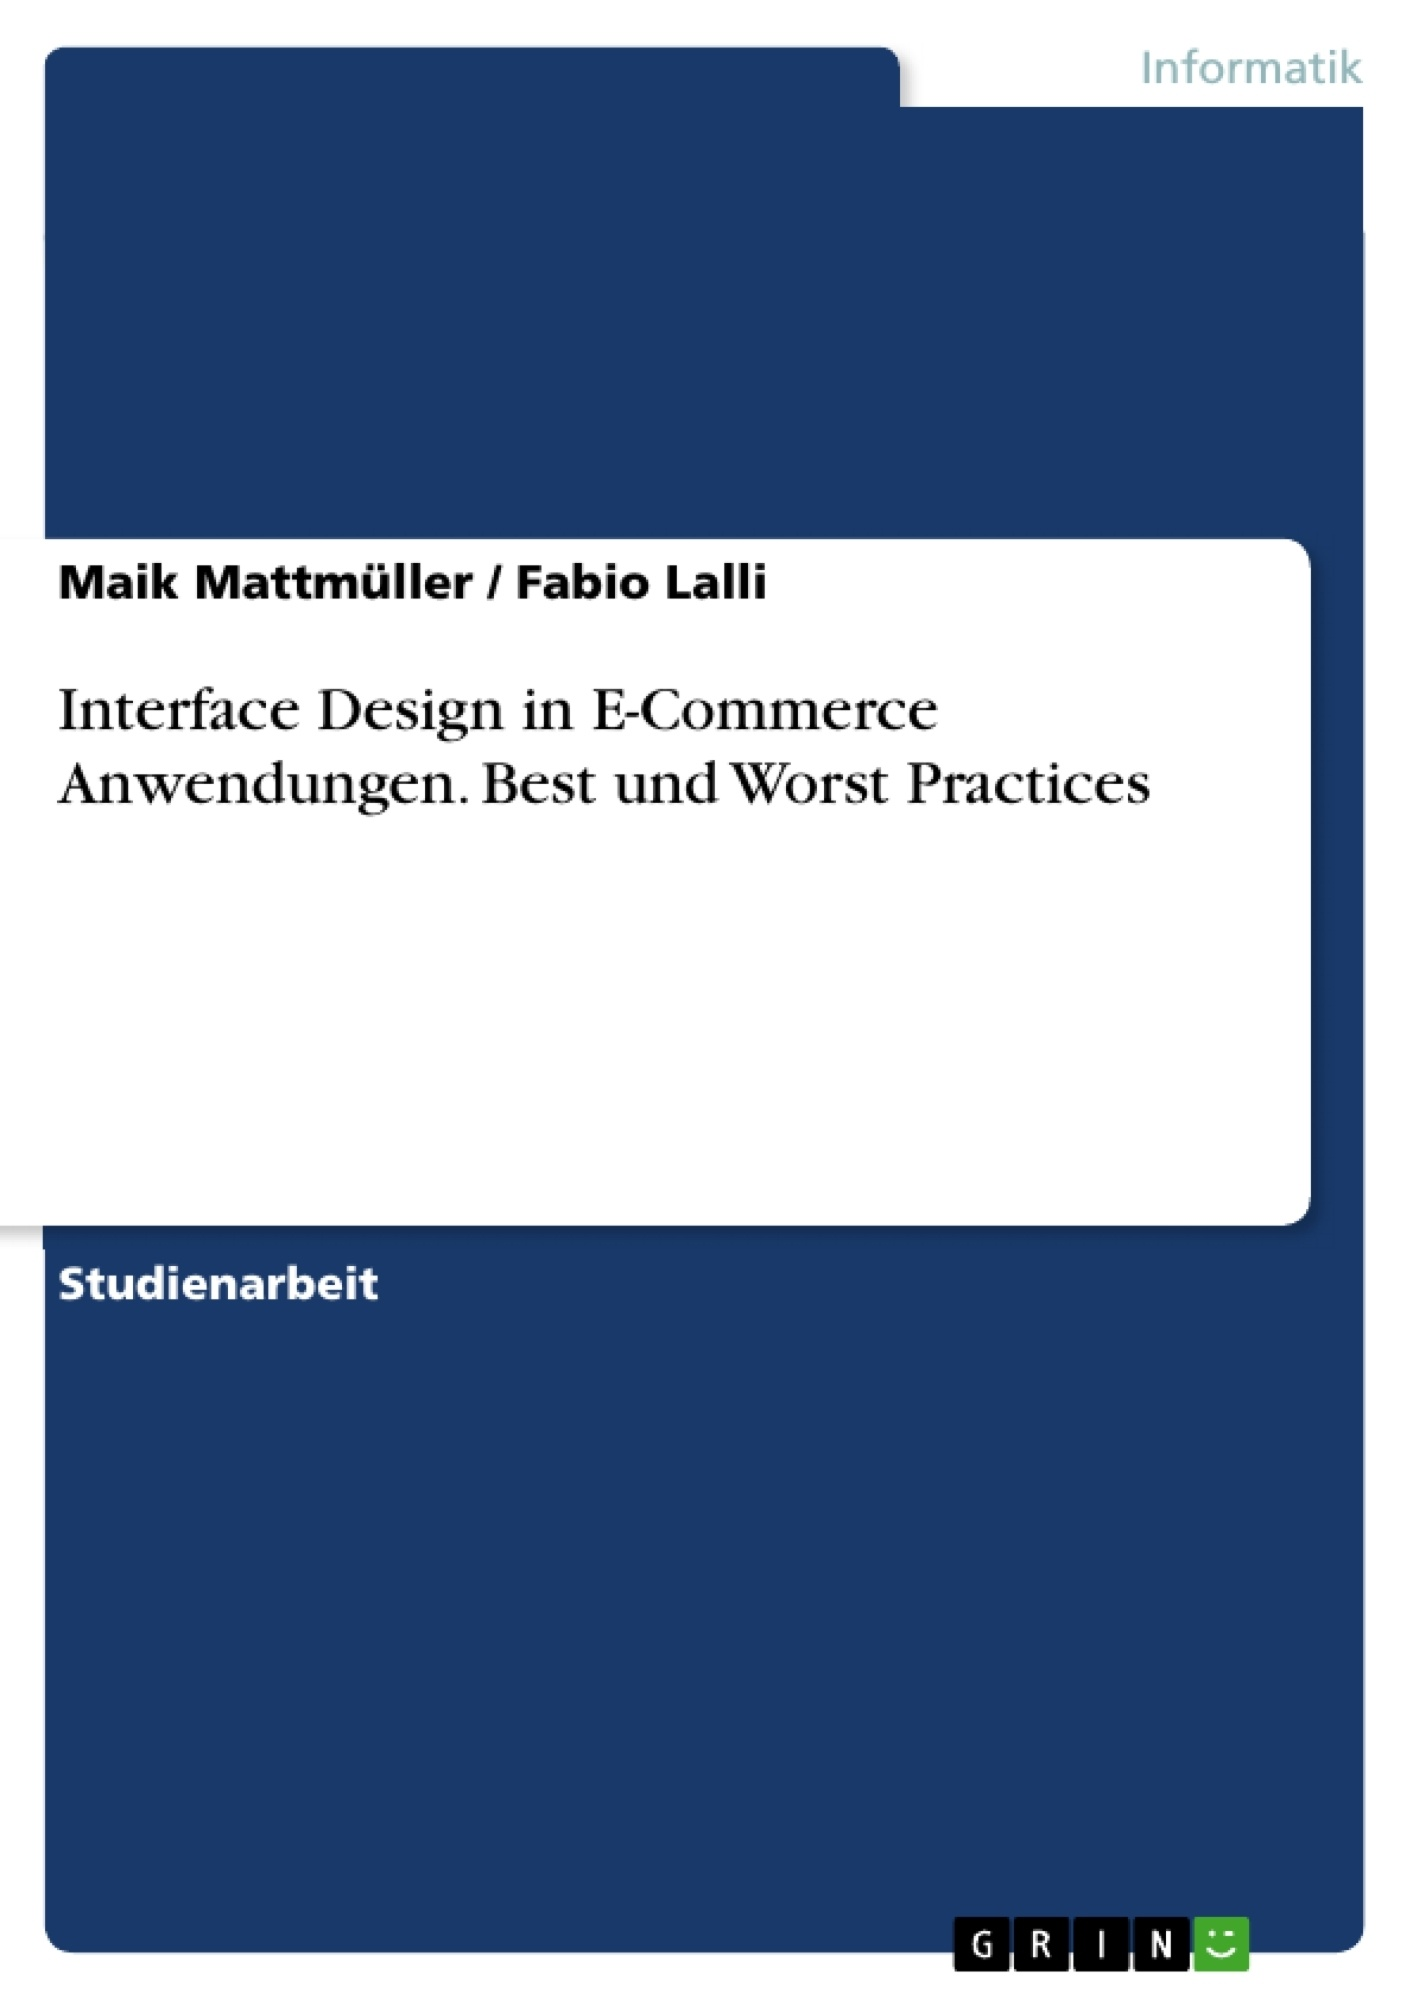 Titel: Interface Design in E-Commerce Anwendungen. Best und Worst Practices